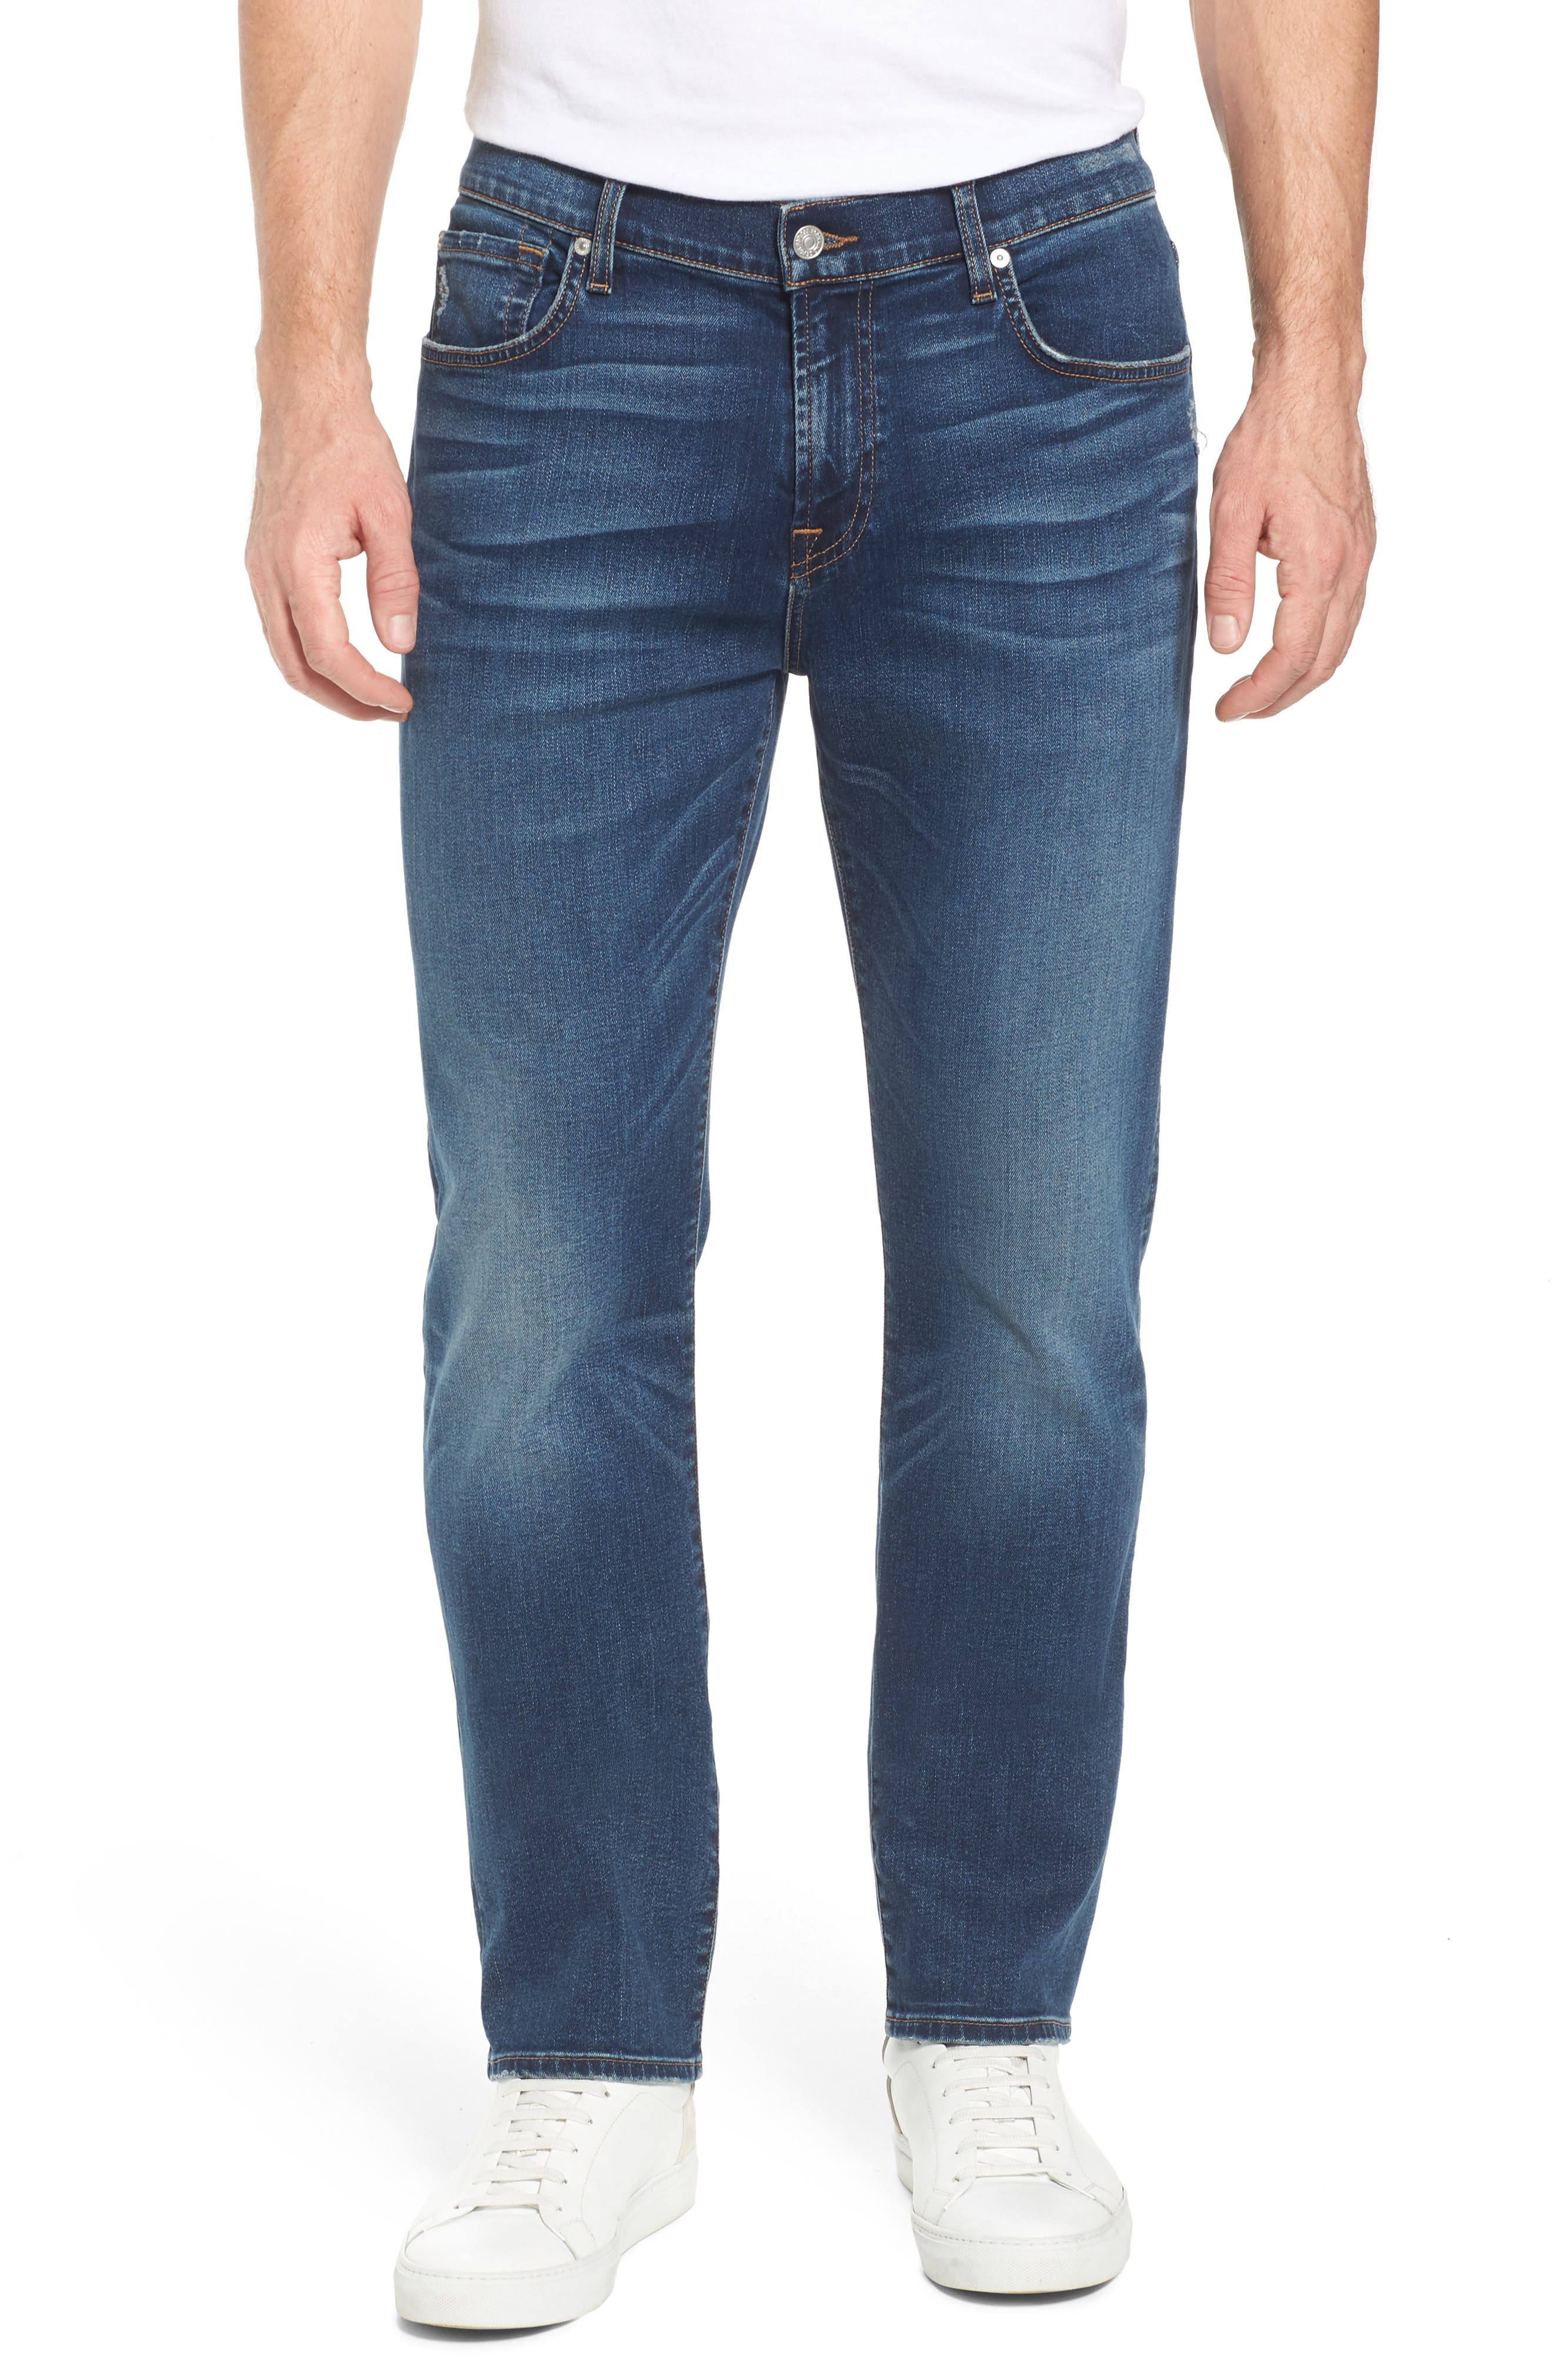 The Straight - Luxe Performance Slim Straight Leg Jeans,                         Main,                         color, LUXE PERFORMANCE UNION